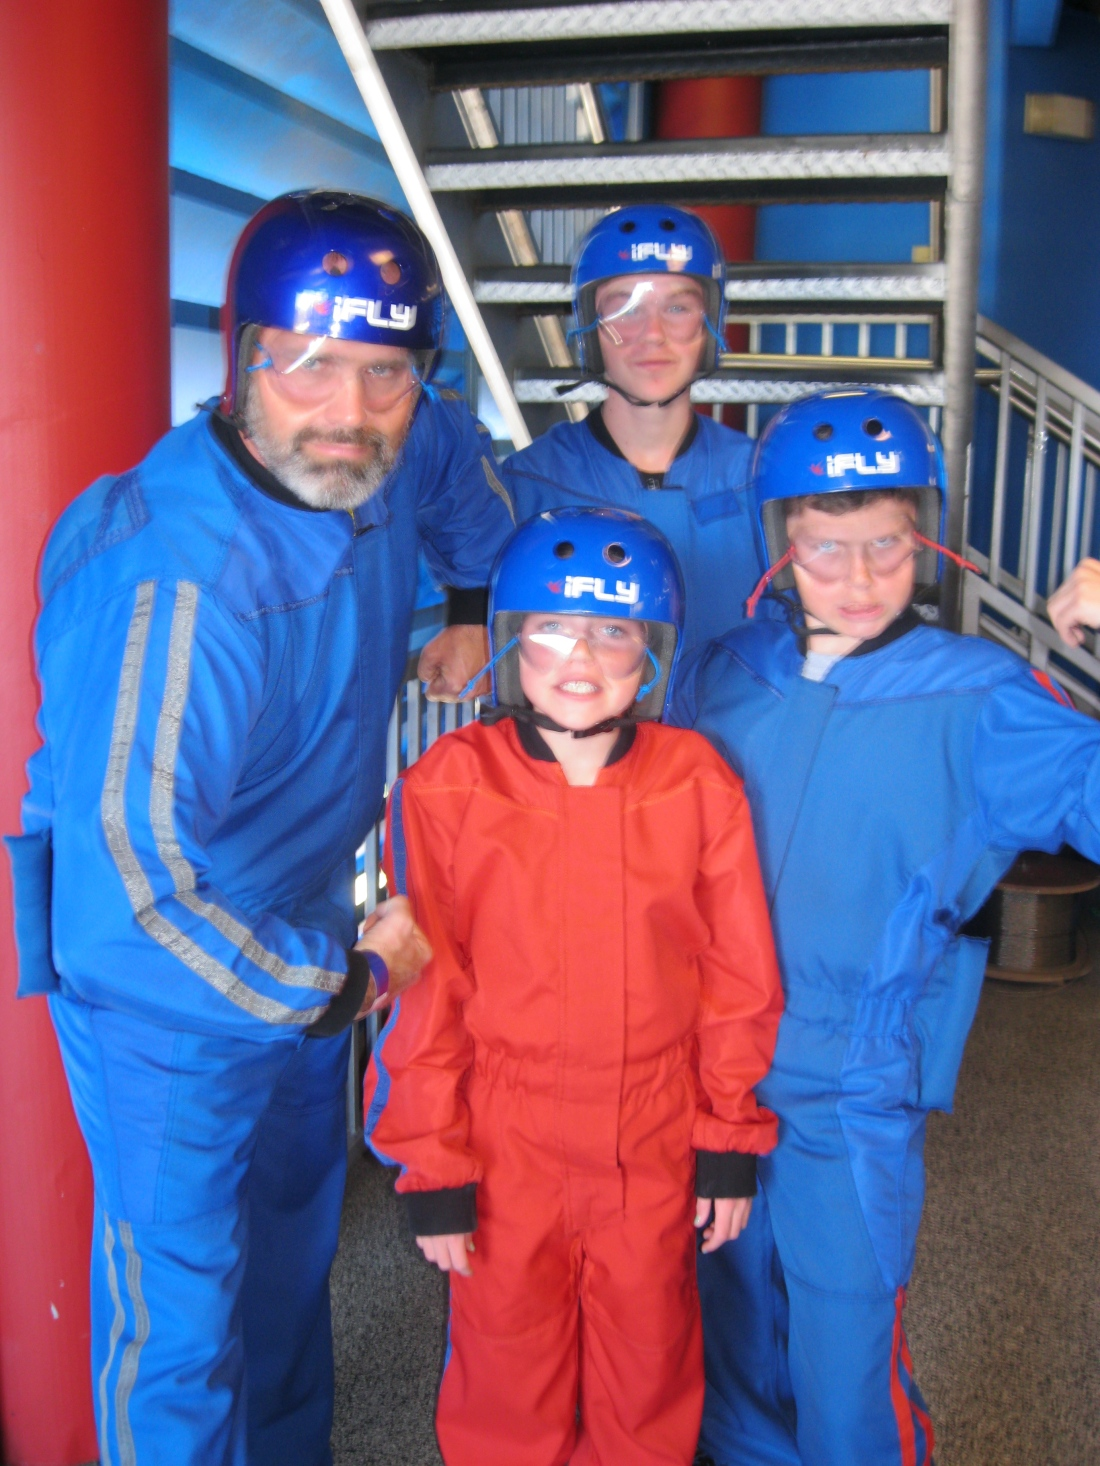 Once we were all packed up, Rolf and the big kids tried a simulated skydiving experience nearby.